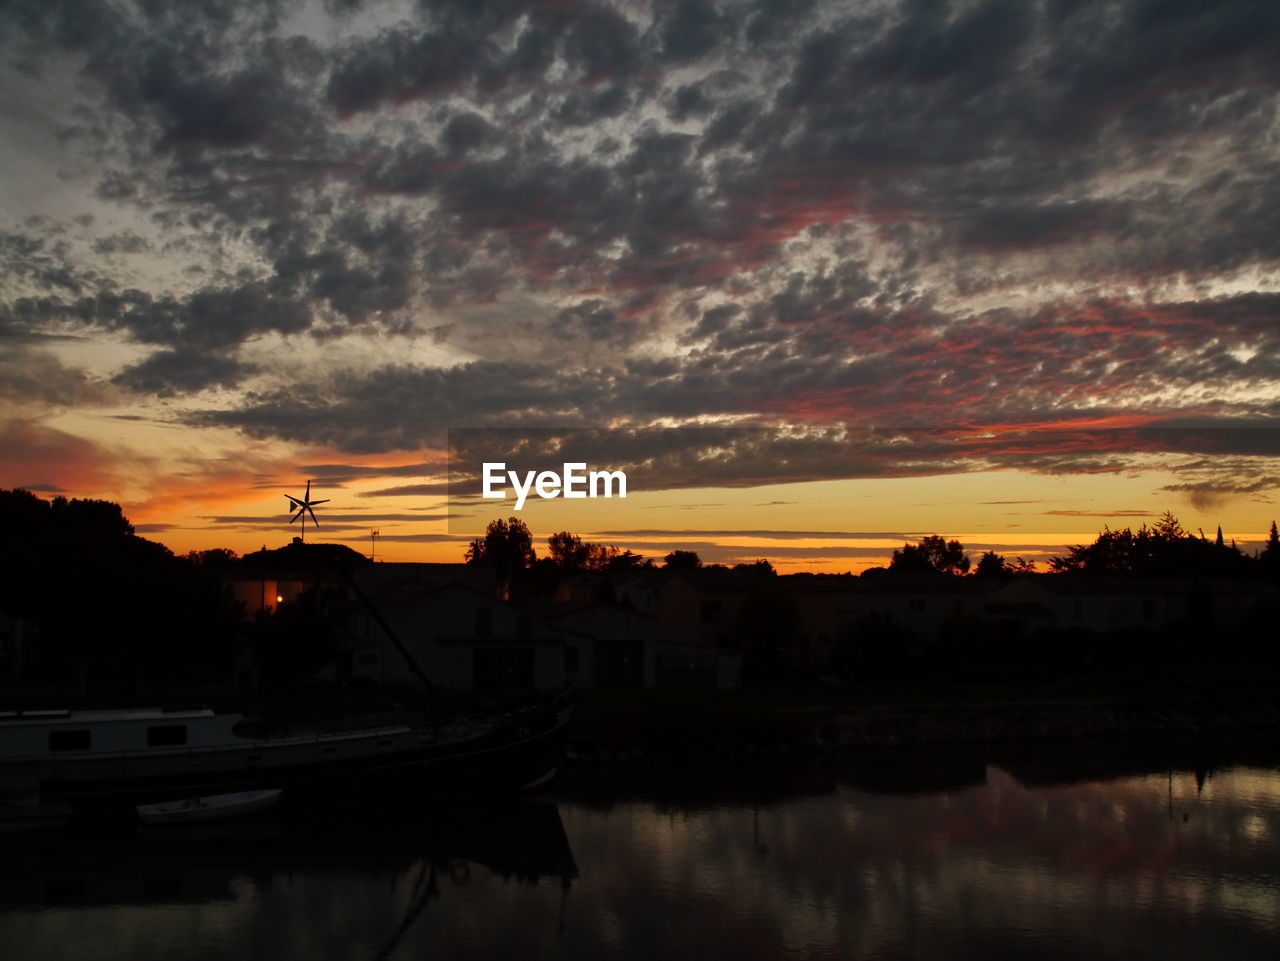 sunset, cloud - sky, sky, reflection, nautical vessel, dramatic sky, orange color, water, silhouette, no people, beauty in nature, nature, built structure, scenics, building exterior, tranquility, transportation, travel destinations, mode of transport, tranquil scene, outdoors, architecture, tree, moored, yacht, city